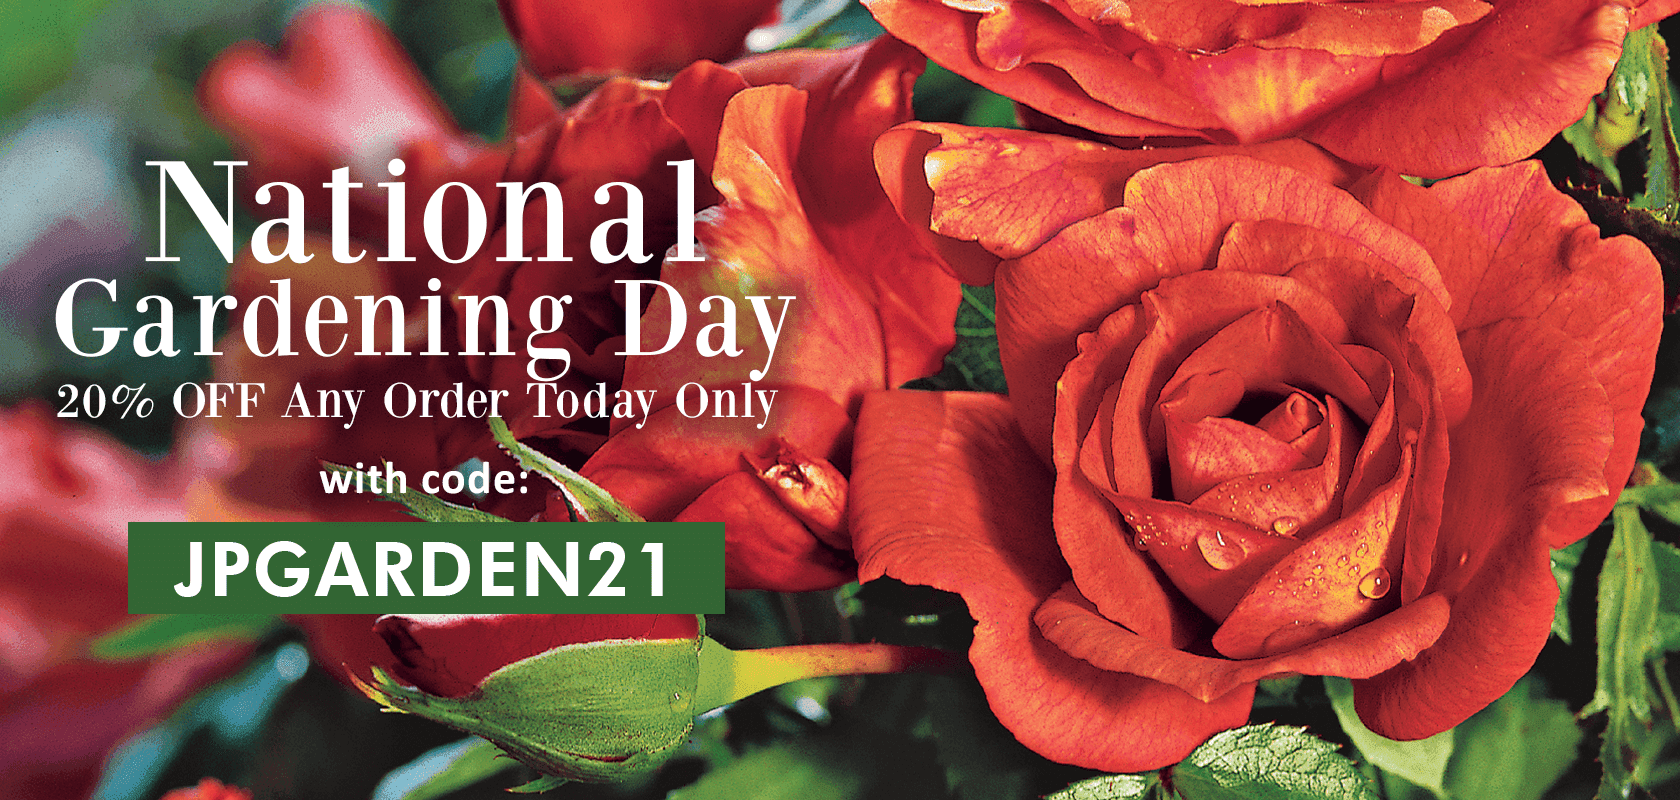 20% OFF Any Order Today Only with code: JPGARDEN21